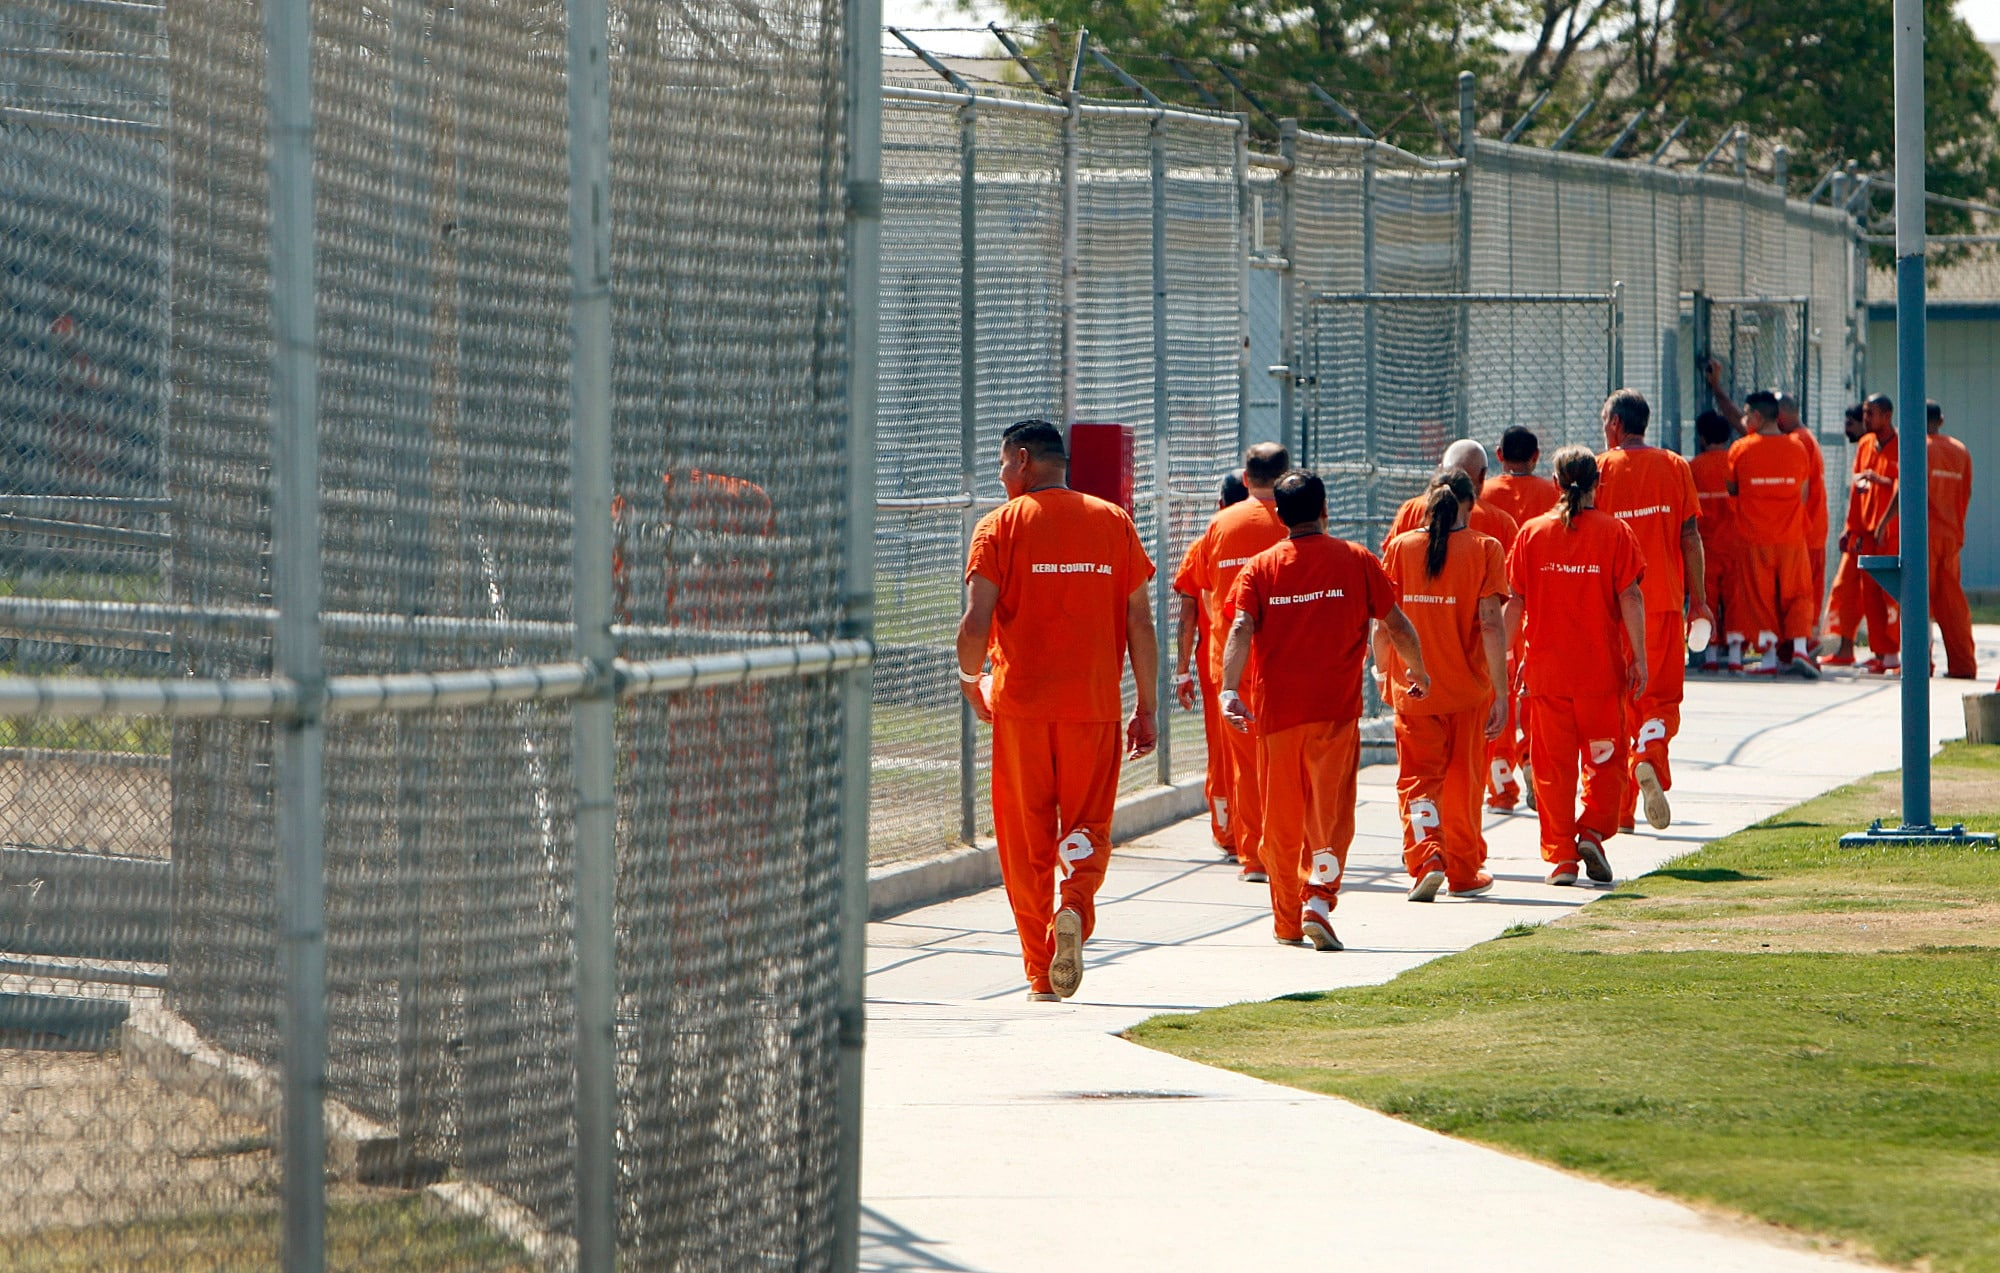 Kern County, California inmates, some of which may soon be free after Prop 47 was voted into law this week. (Photo: LA Times)